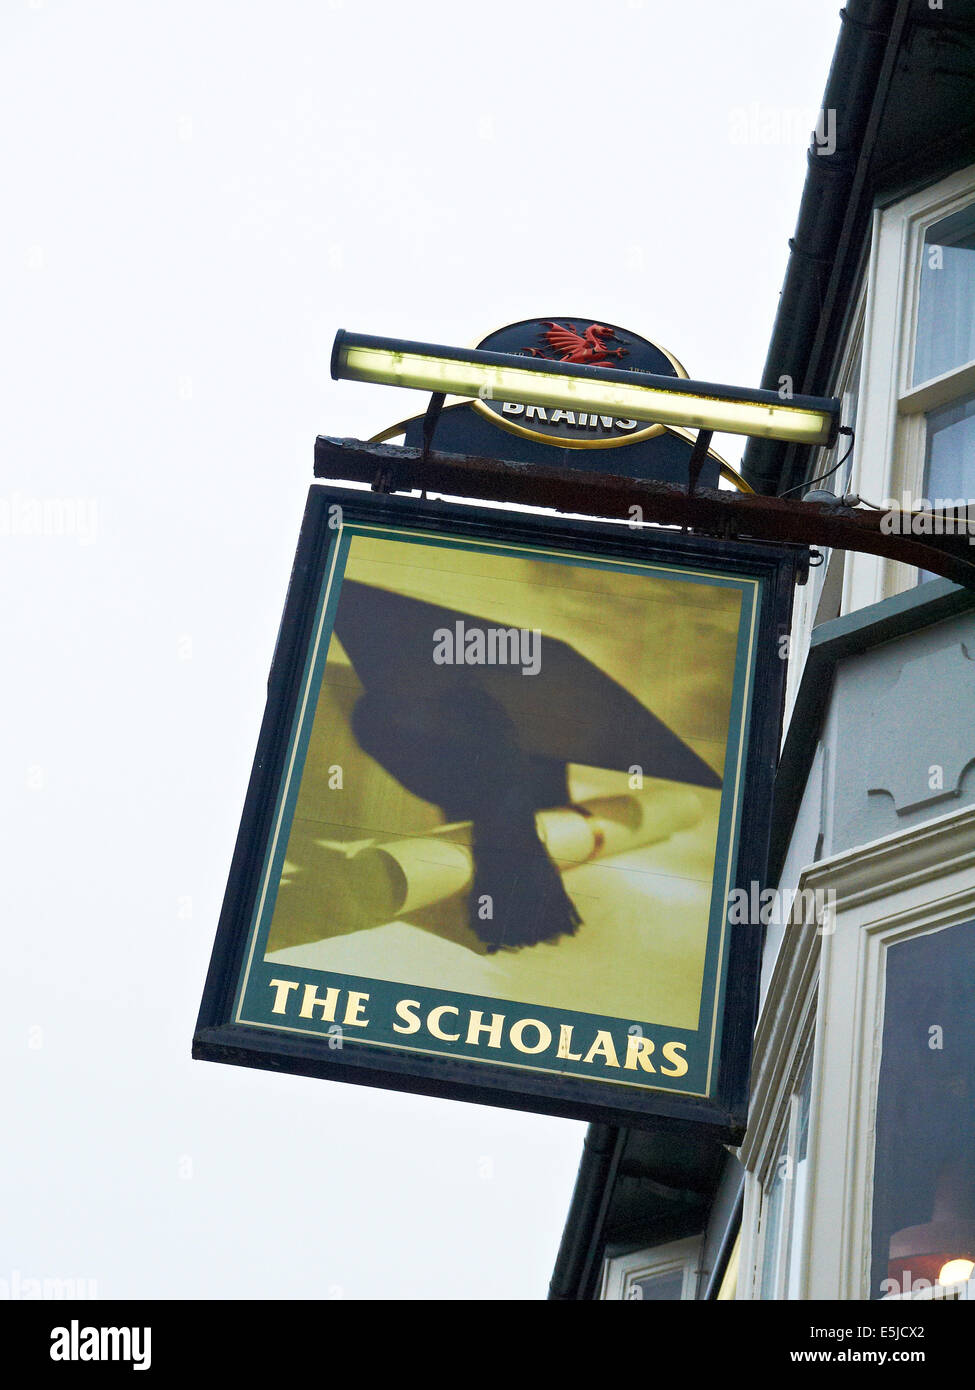 The Scholars pub sign in Aberystwyth Ceredigion Wales UK - Stock Image